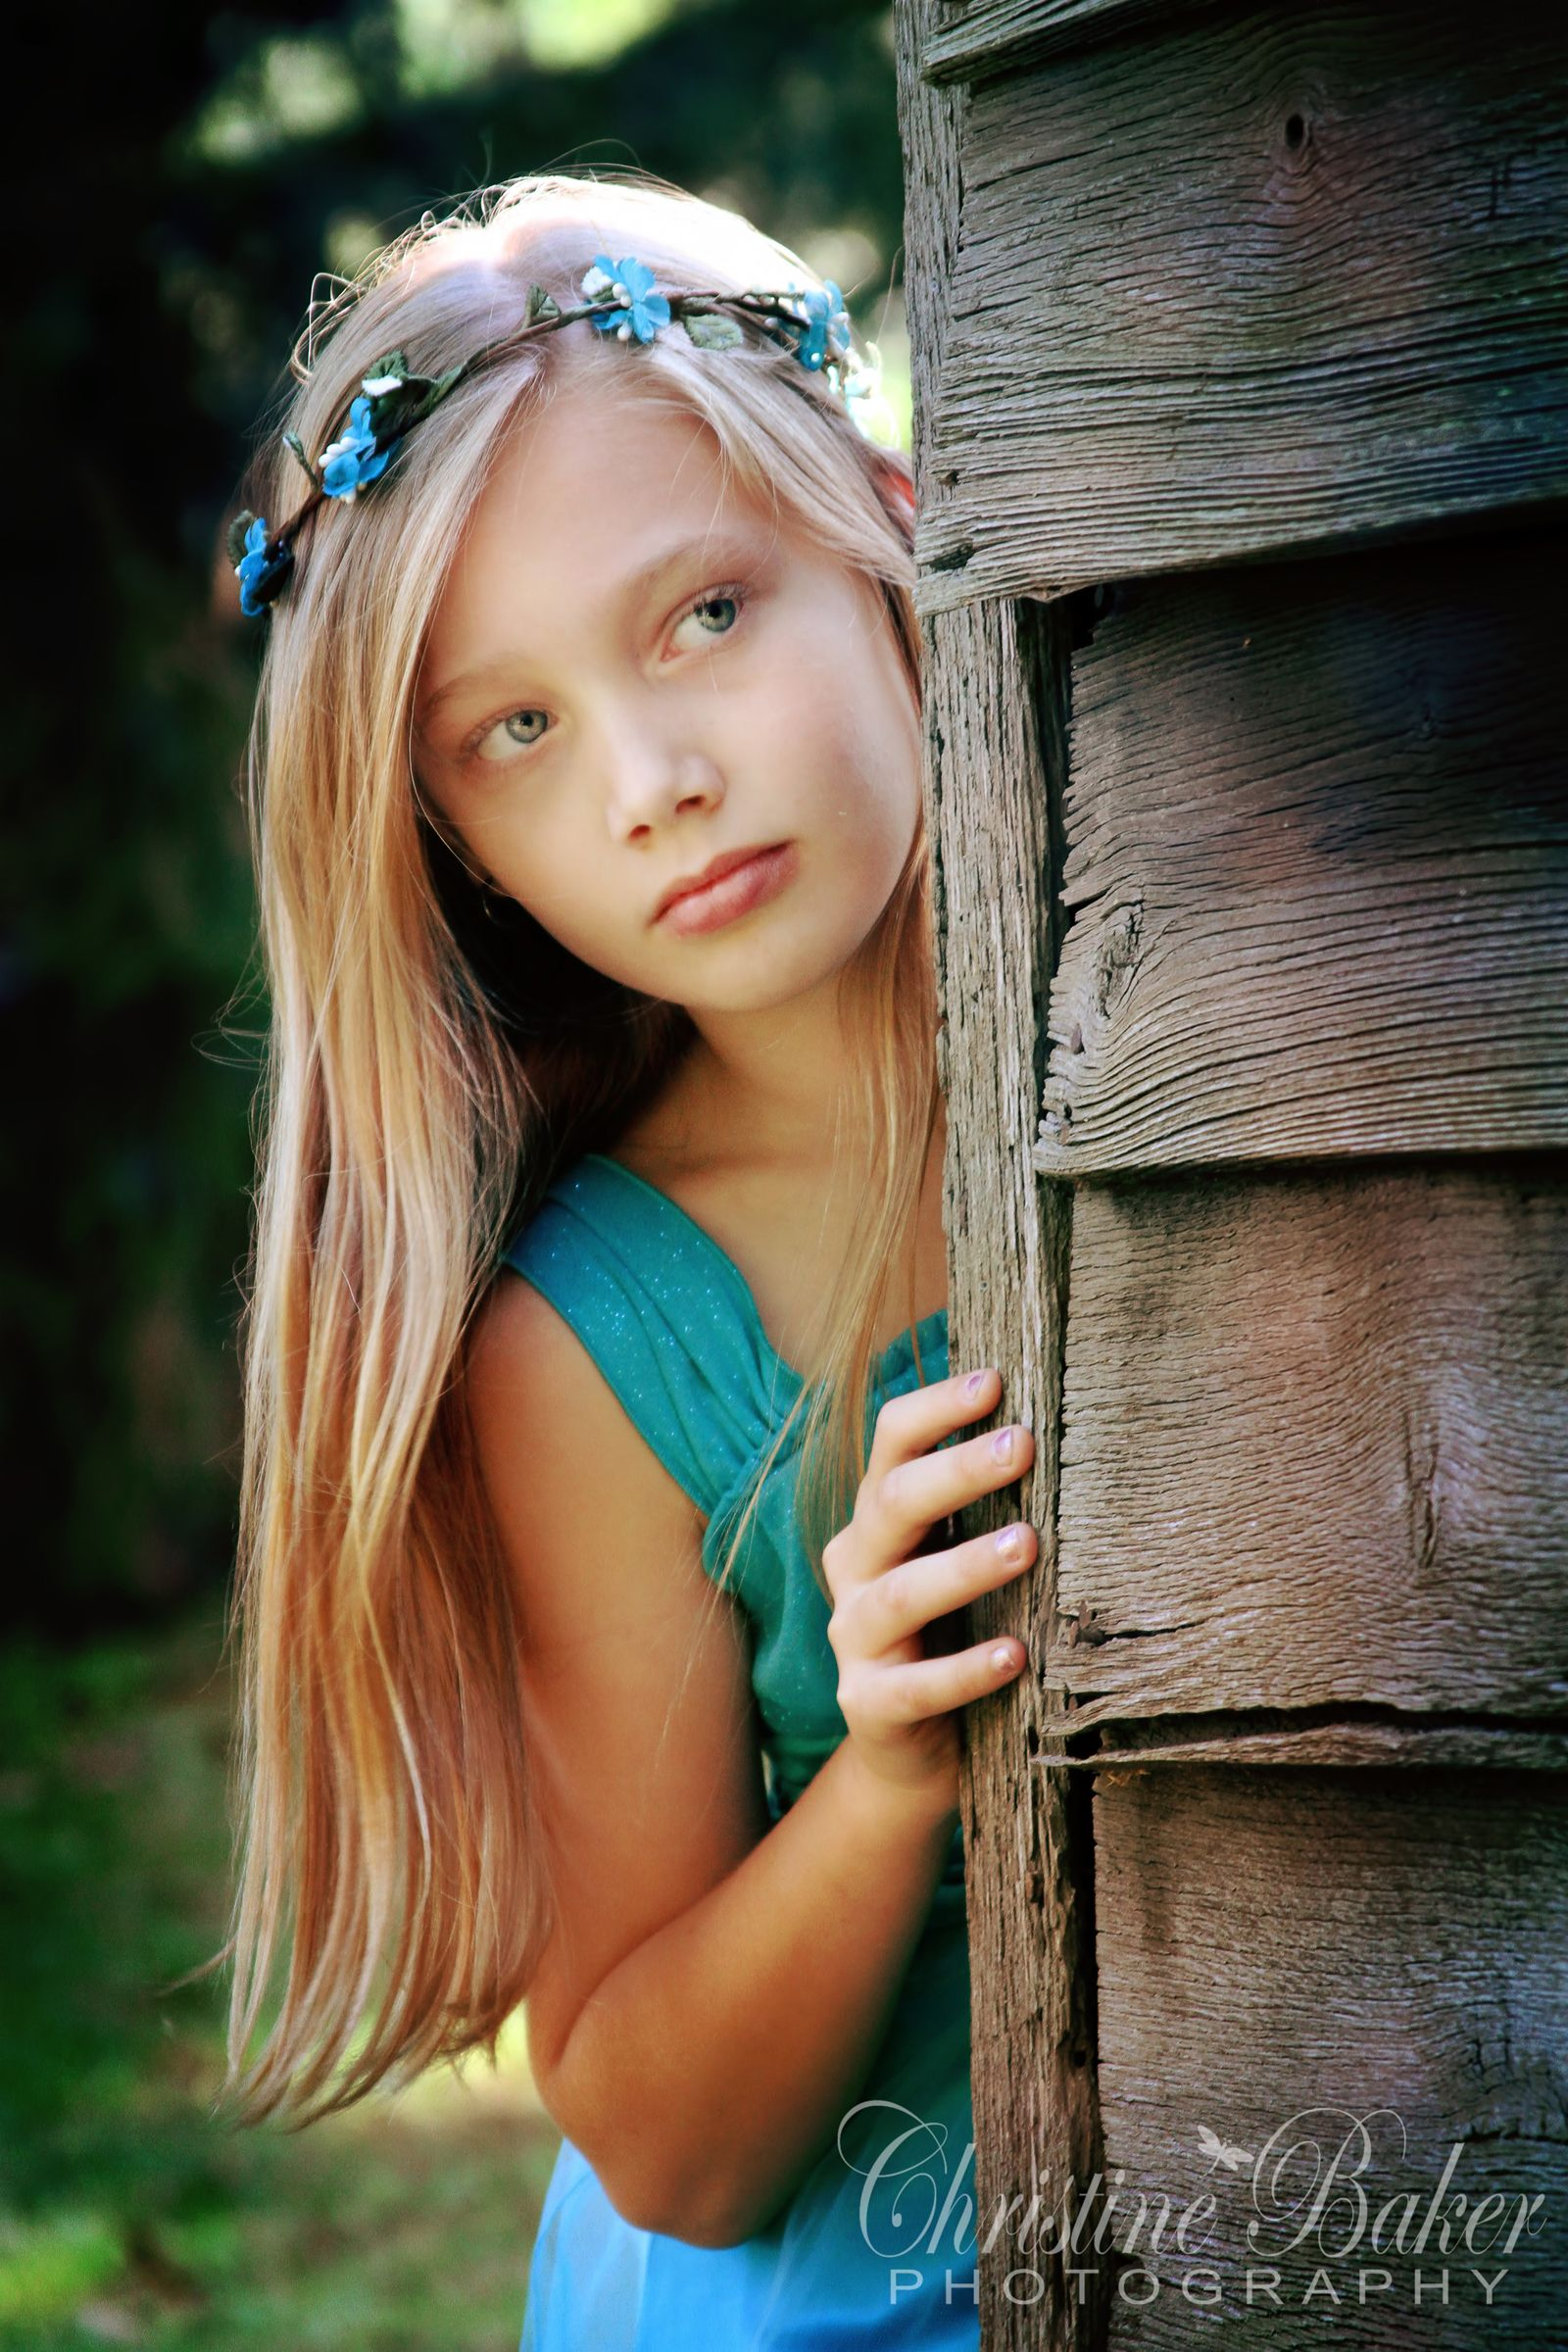 Childrens Photography Ideas For Girls Photography Girls